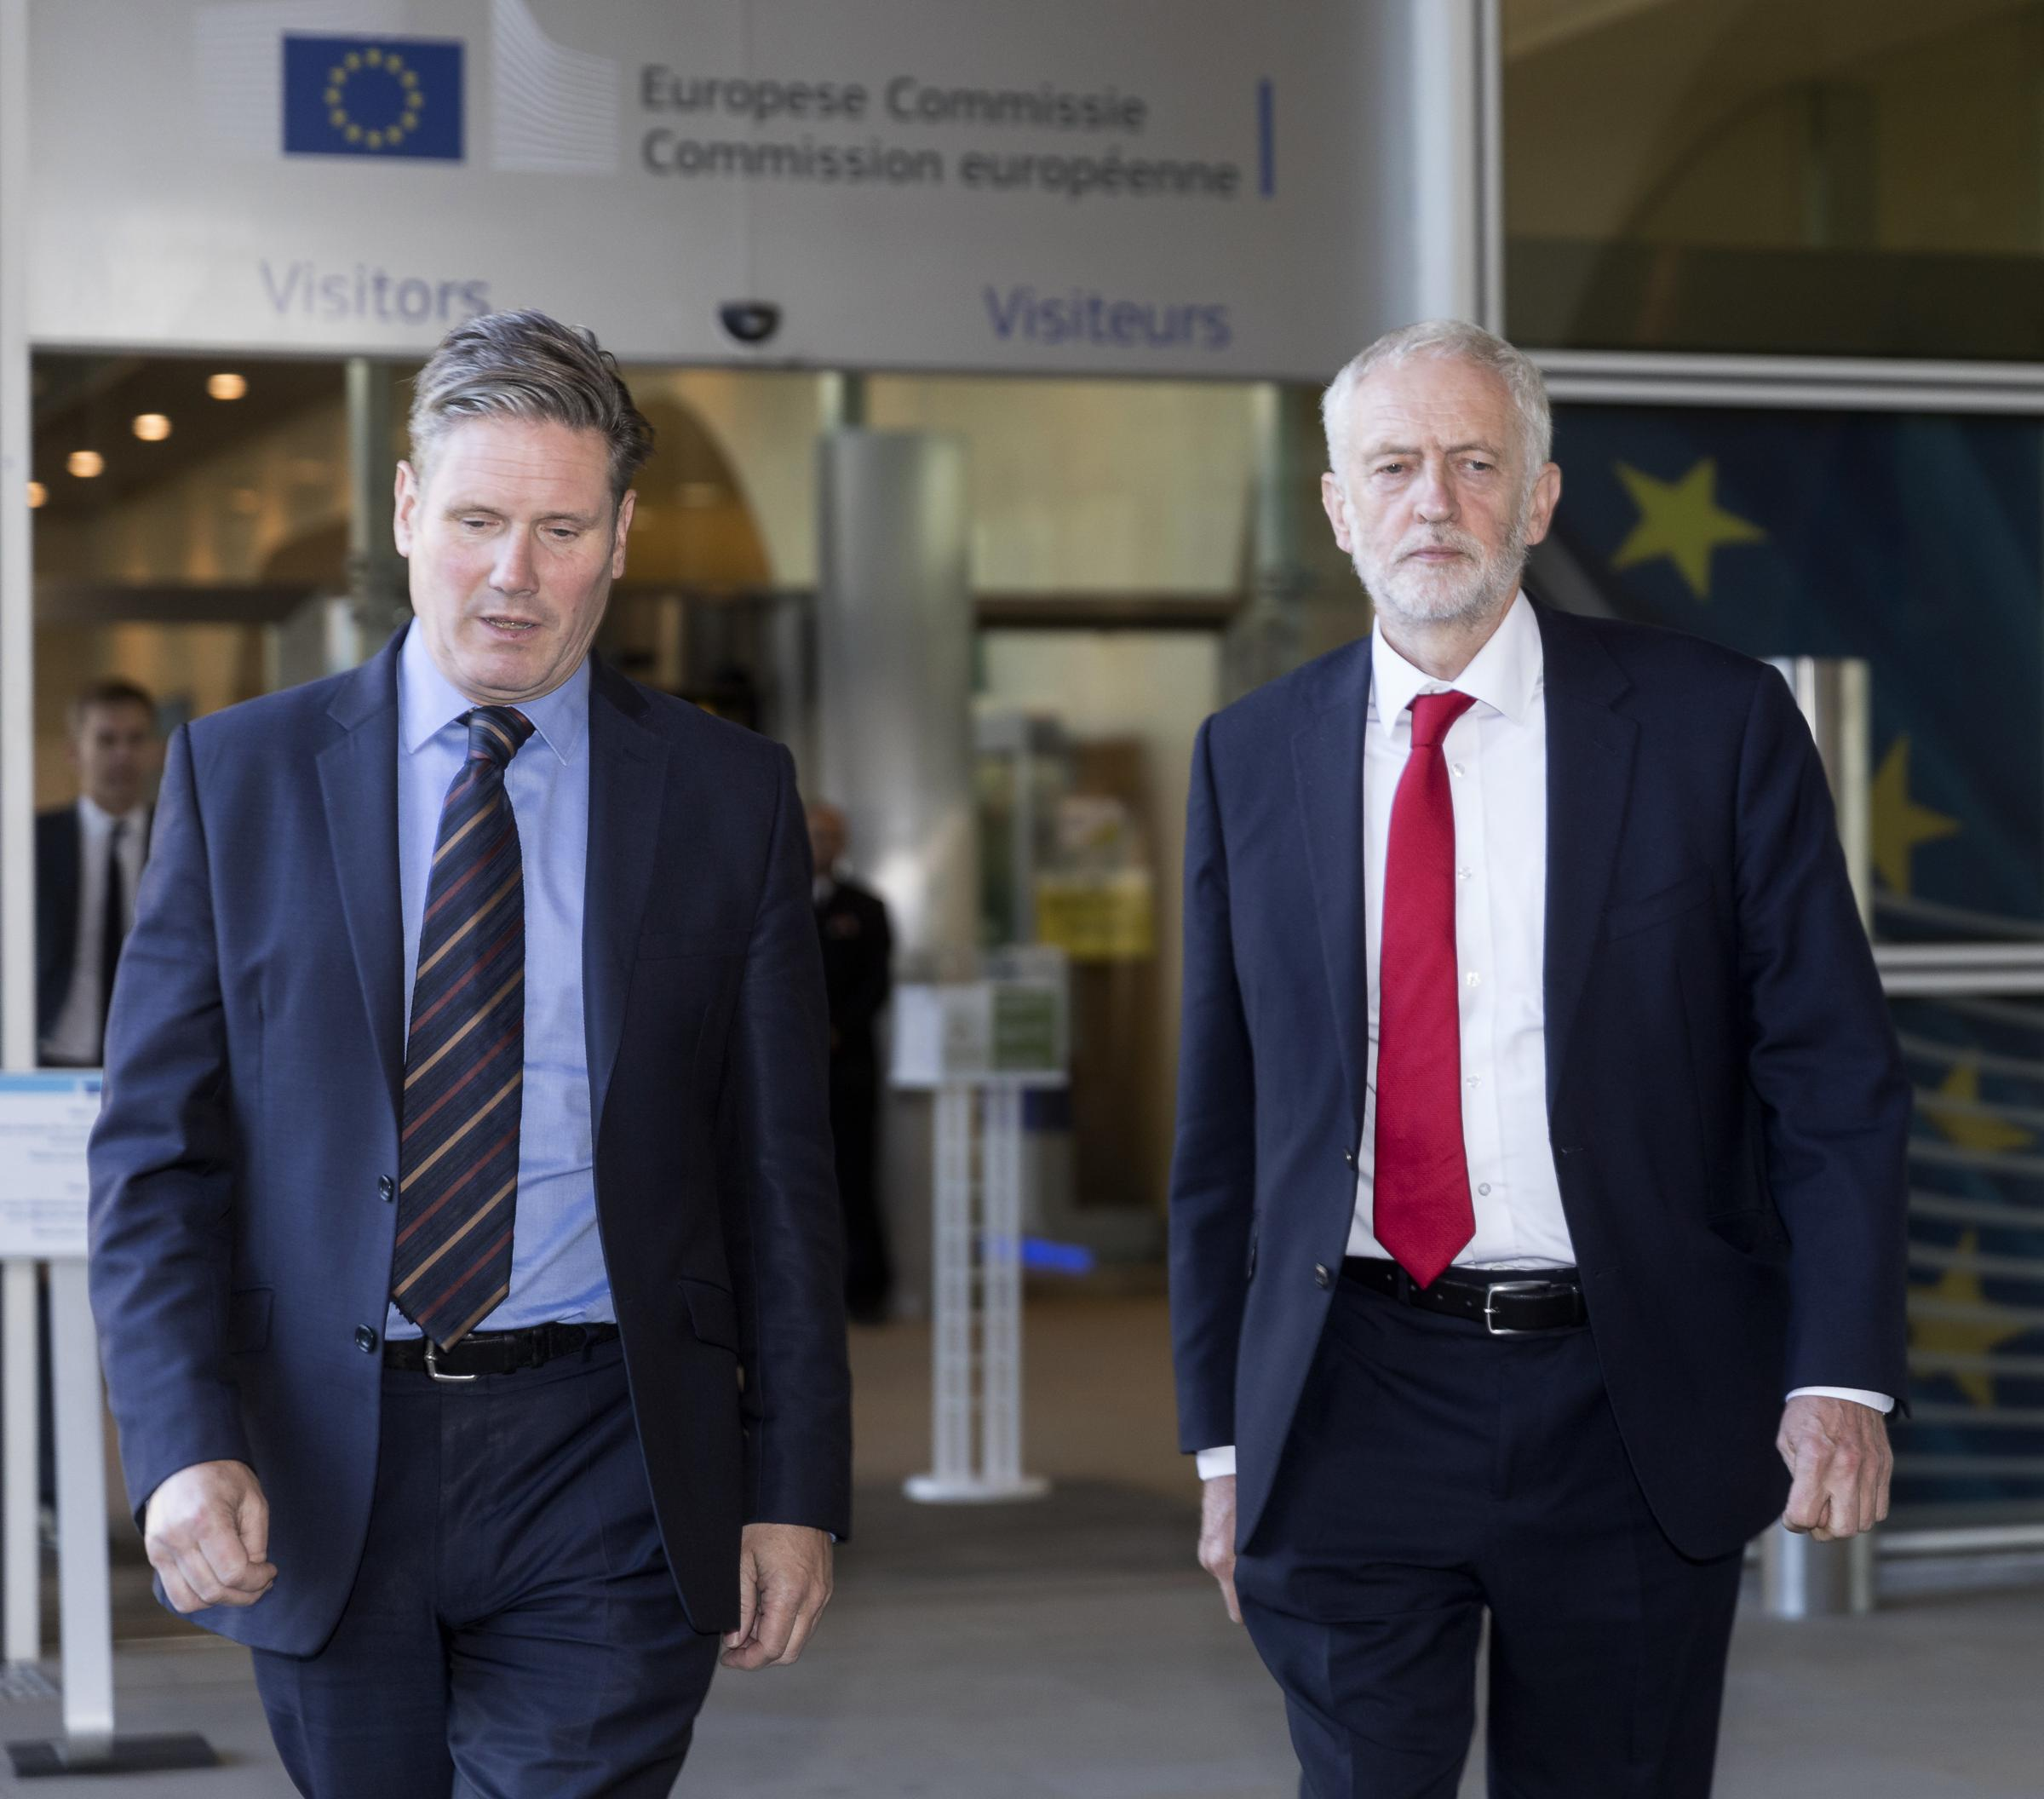 Lost on Europe: Labour's shadow Brexit secretary Keir Starmer and leader Jeremy Corbyn